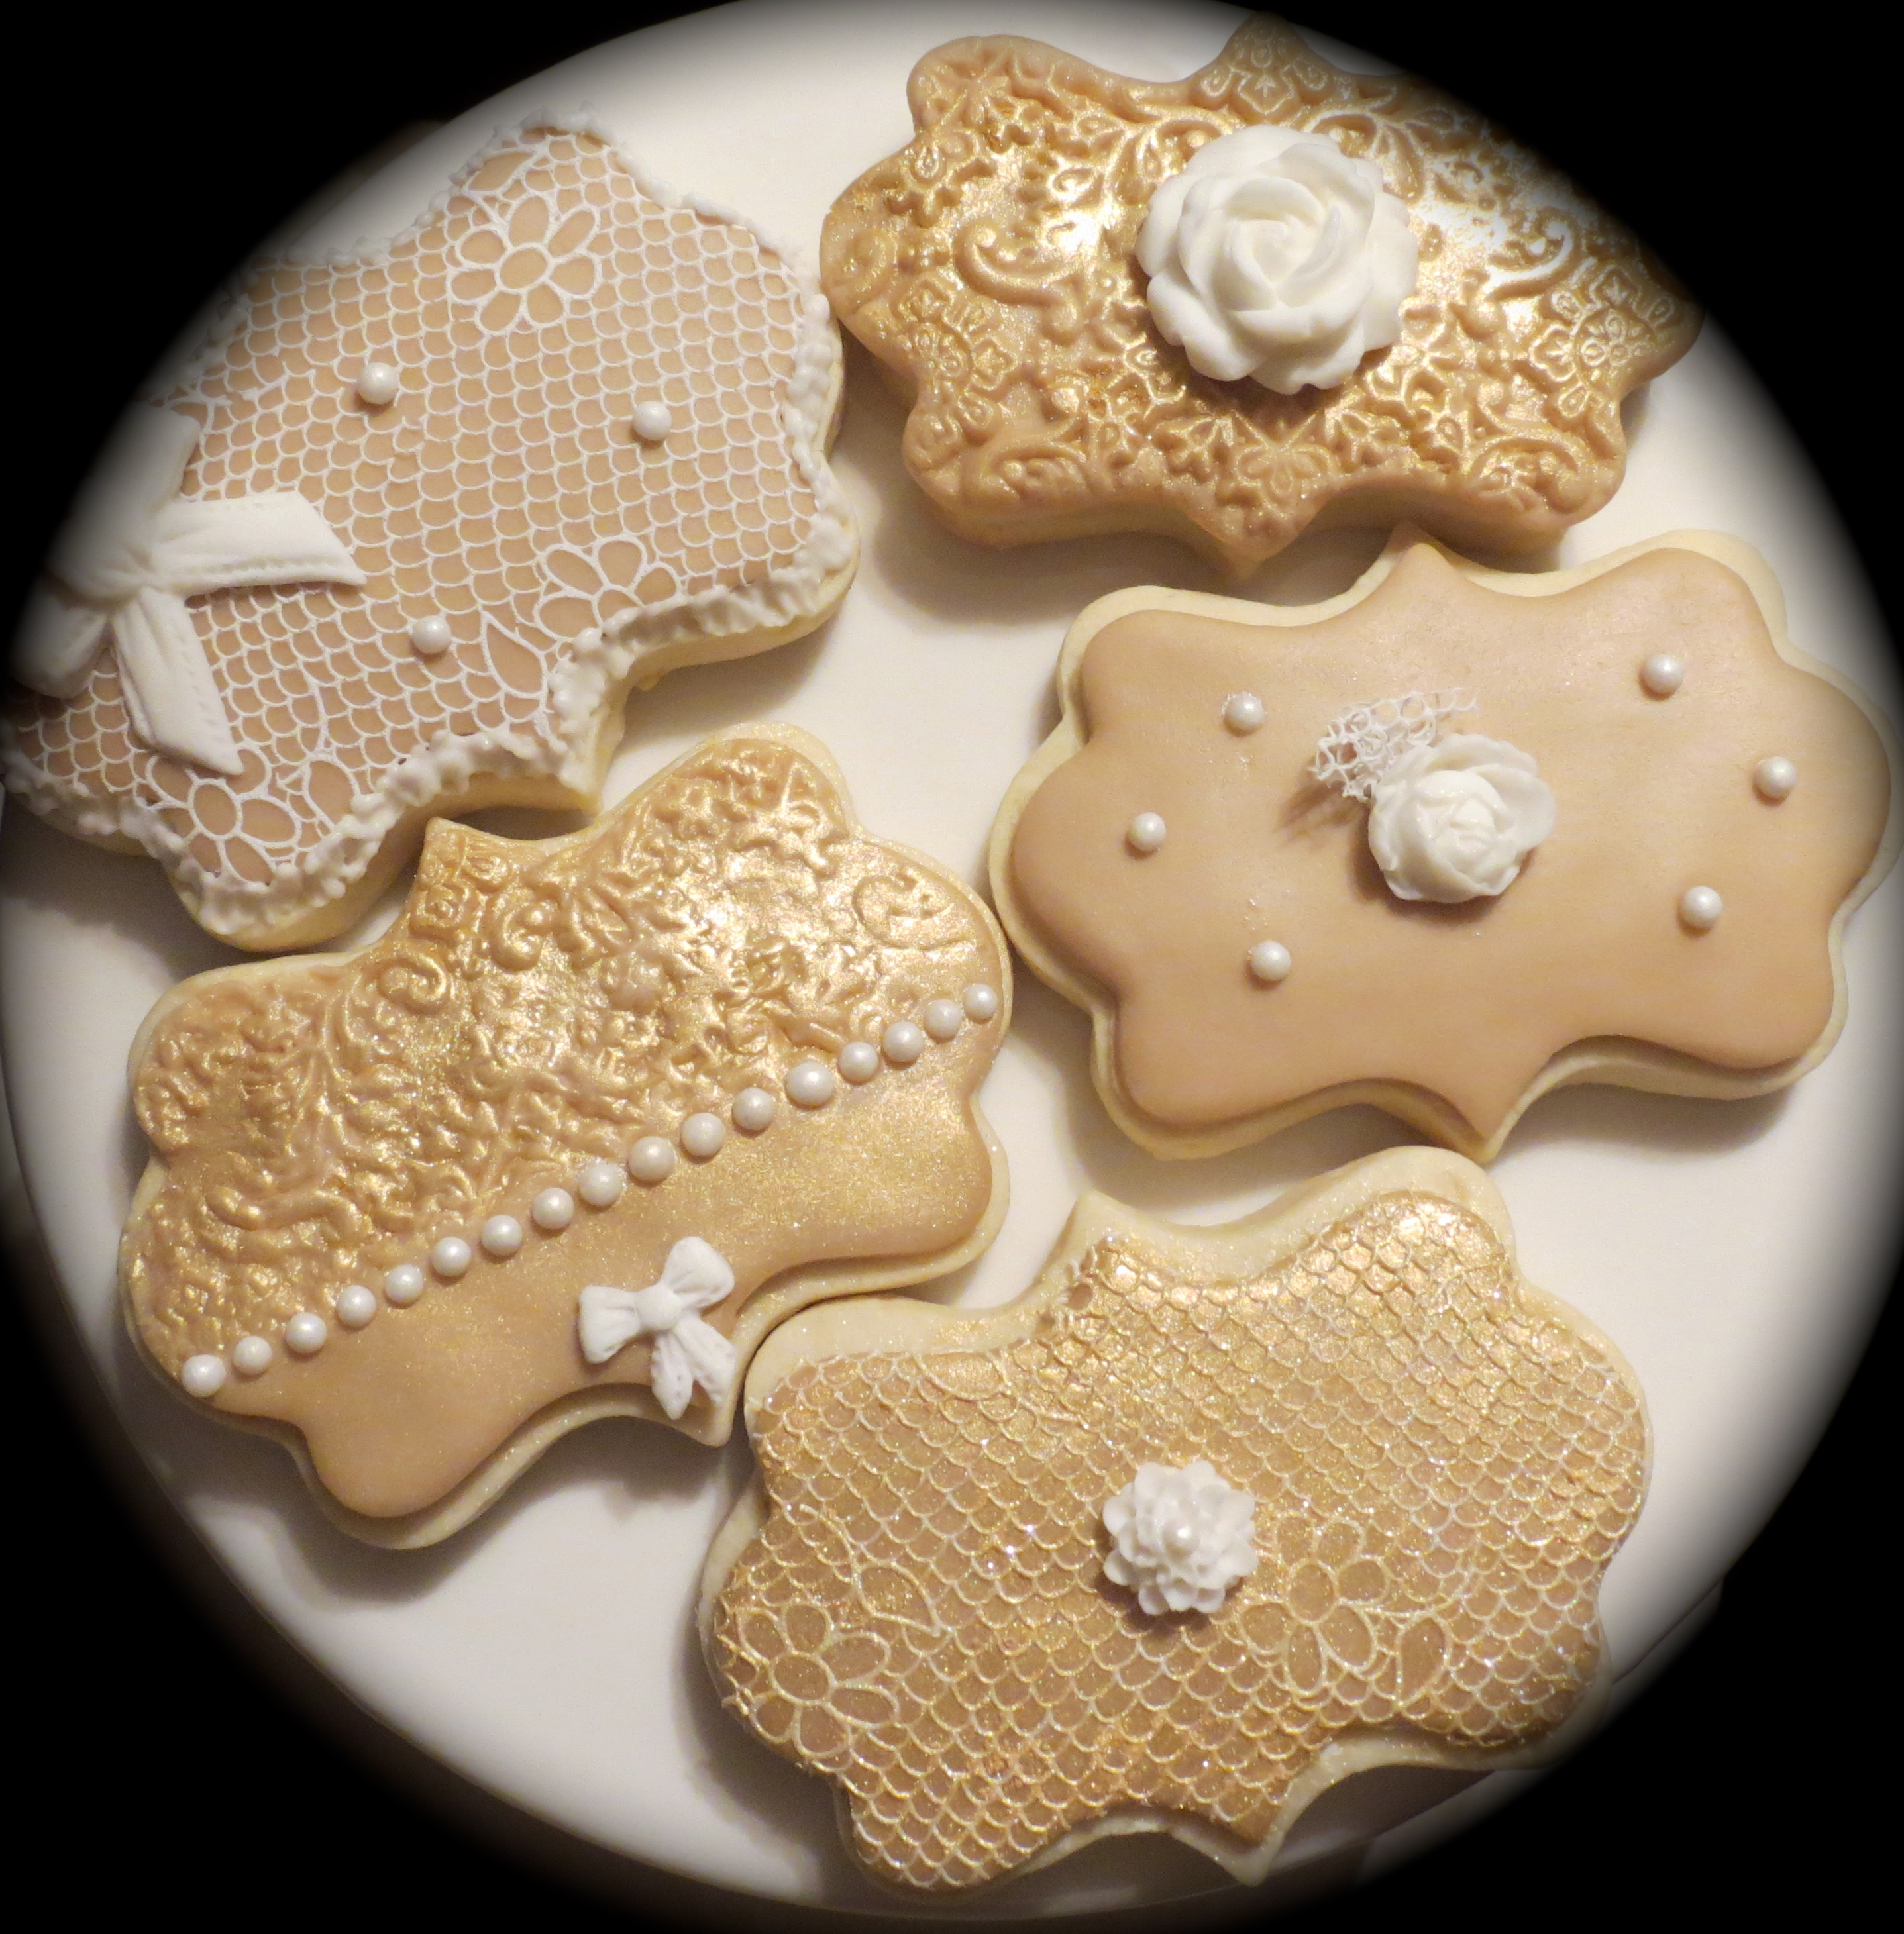 Gold And Lace Lemon Zest Sugar Cookies.Decorated with cake lace, royal icing and fondant embellishments.